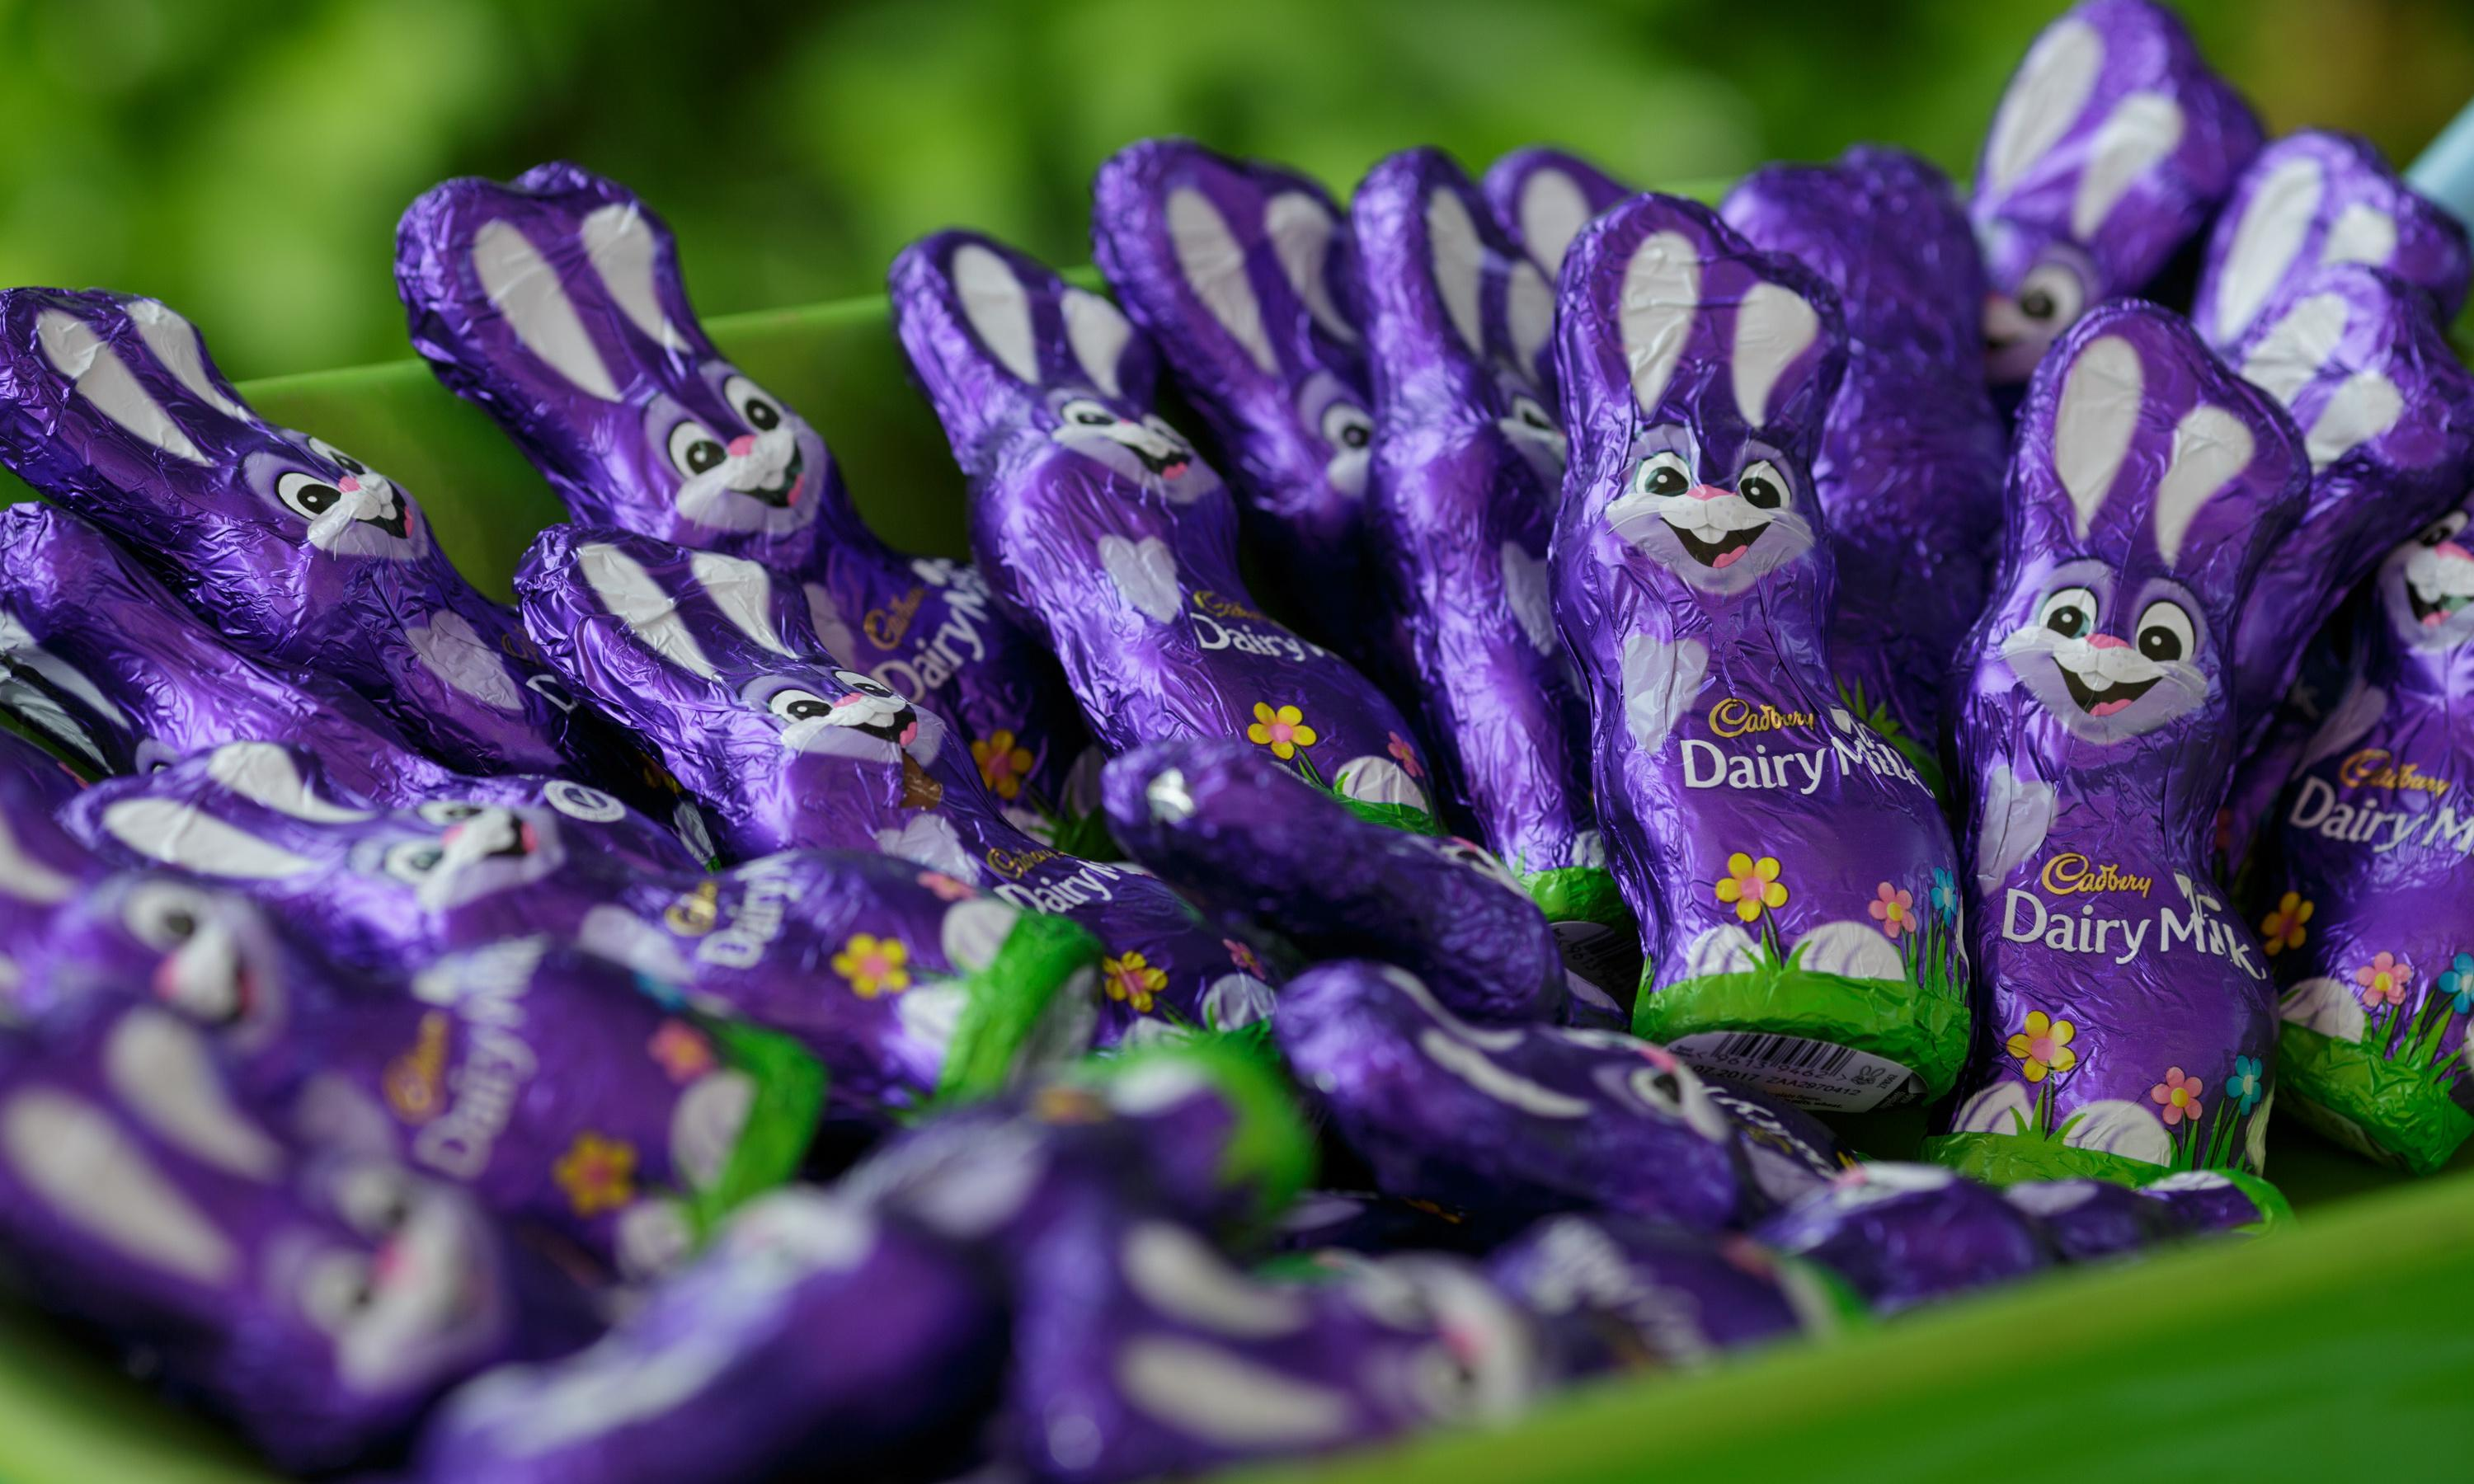 Easter egg hunts land National Trust in a row over Cadbury's link to rainforest loss